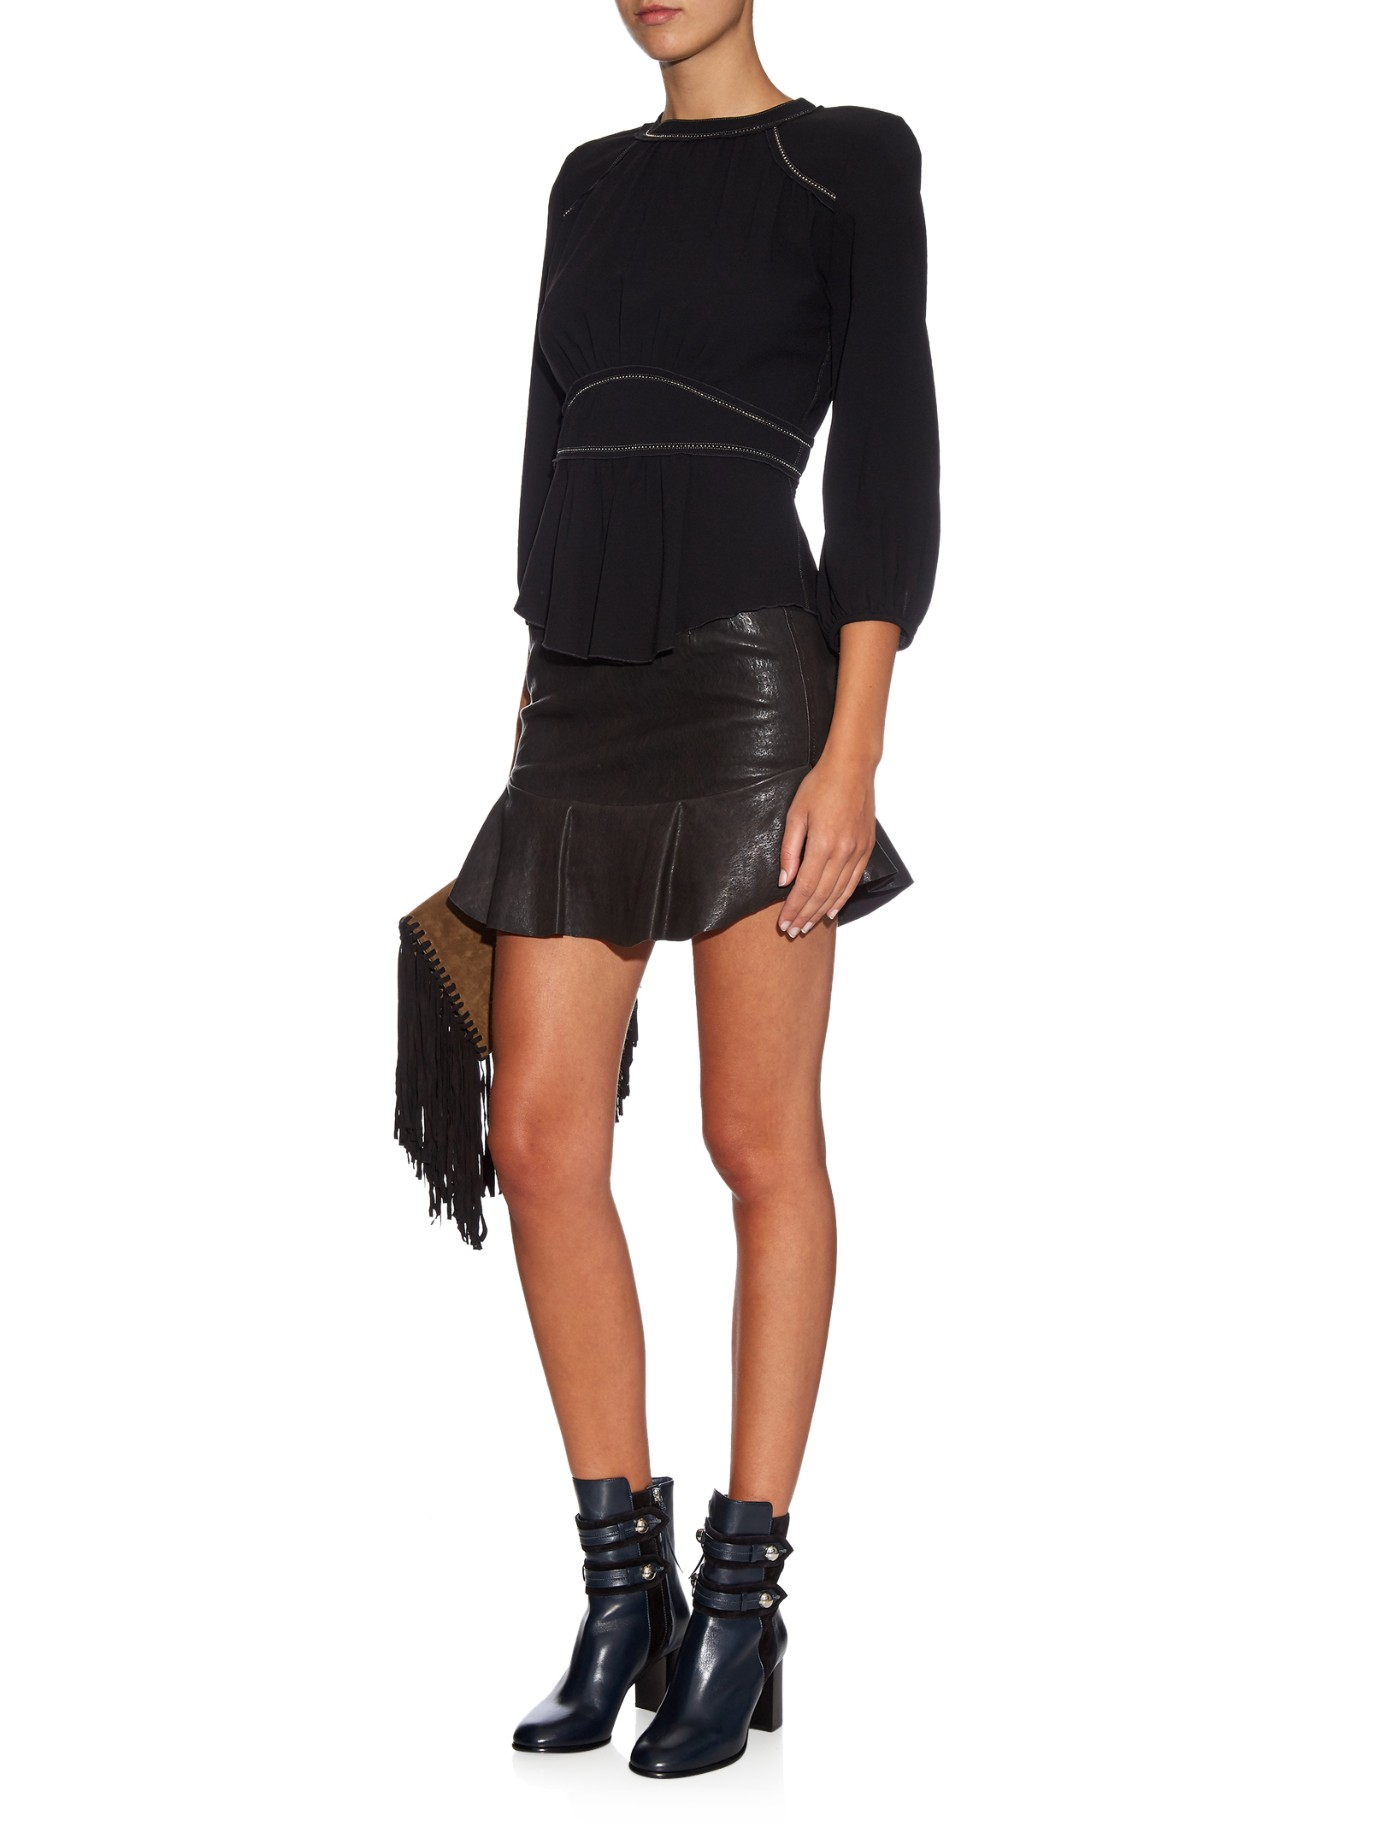 0f1fd8e7b Gallery. Previously sold at: MATCHESFASHION.COM · Women's Leather Mini  Skirts